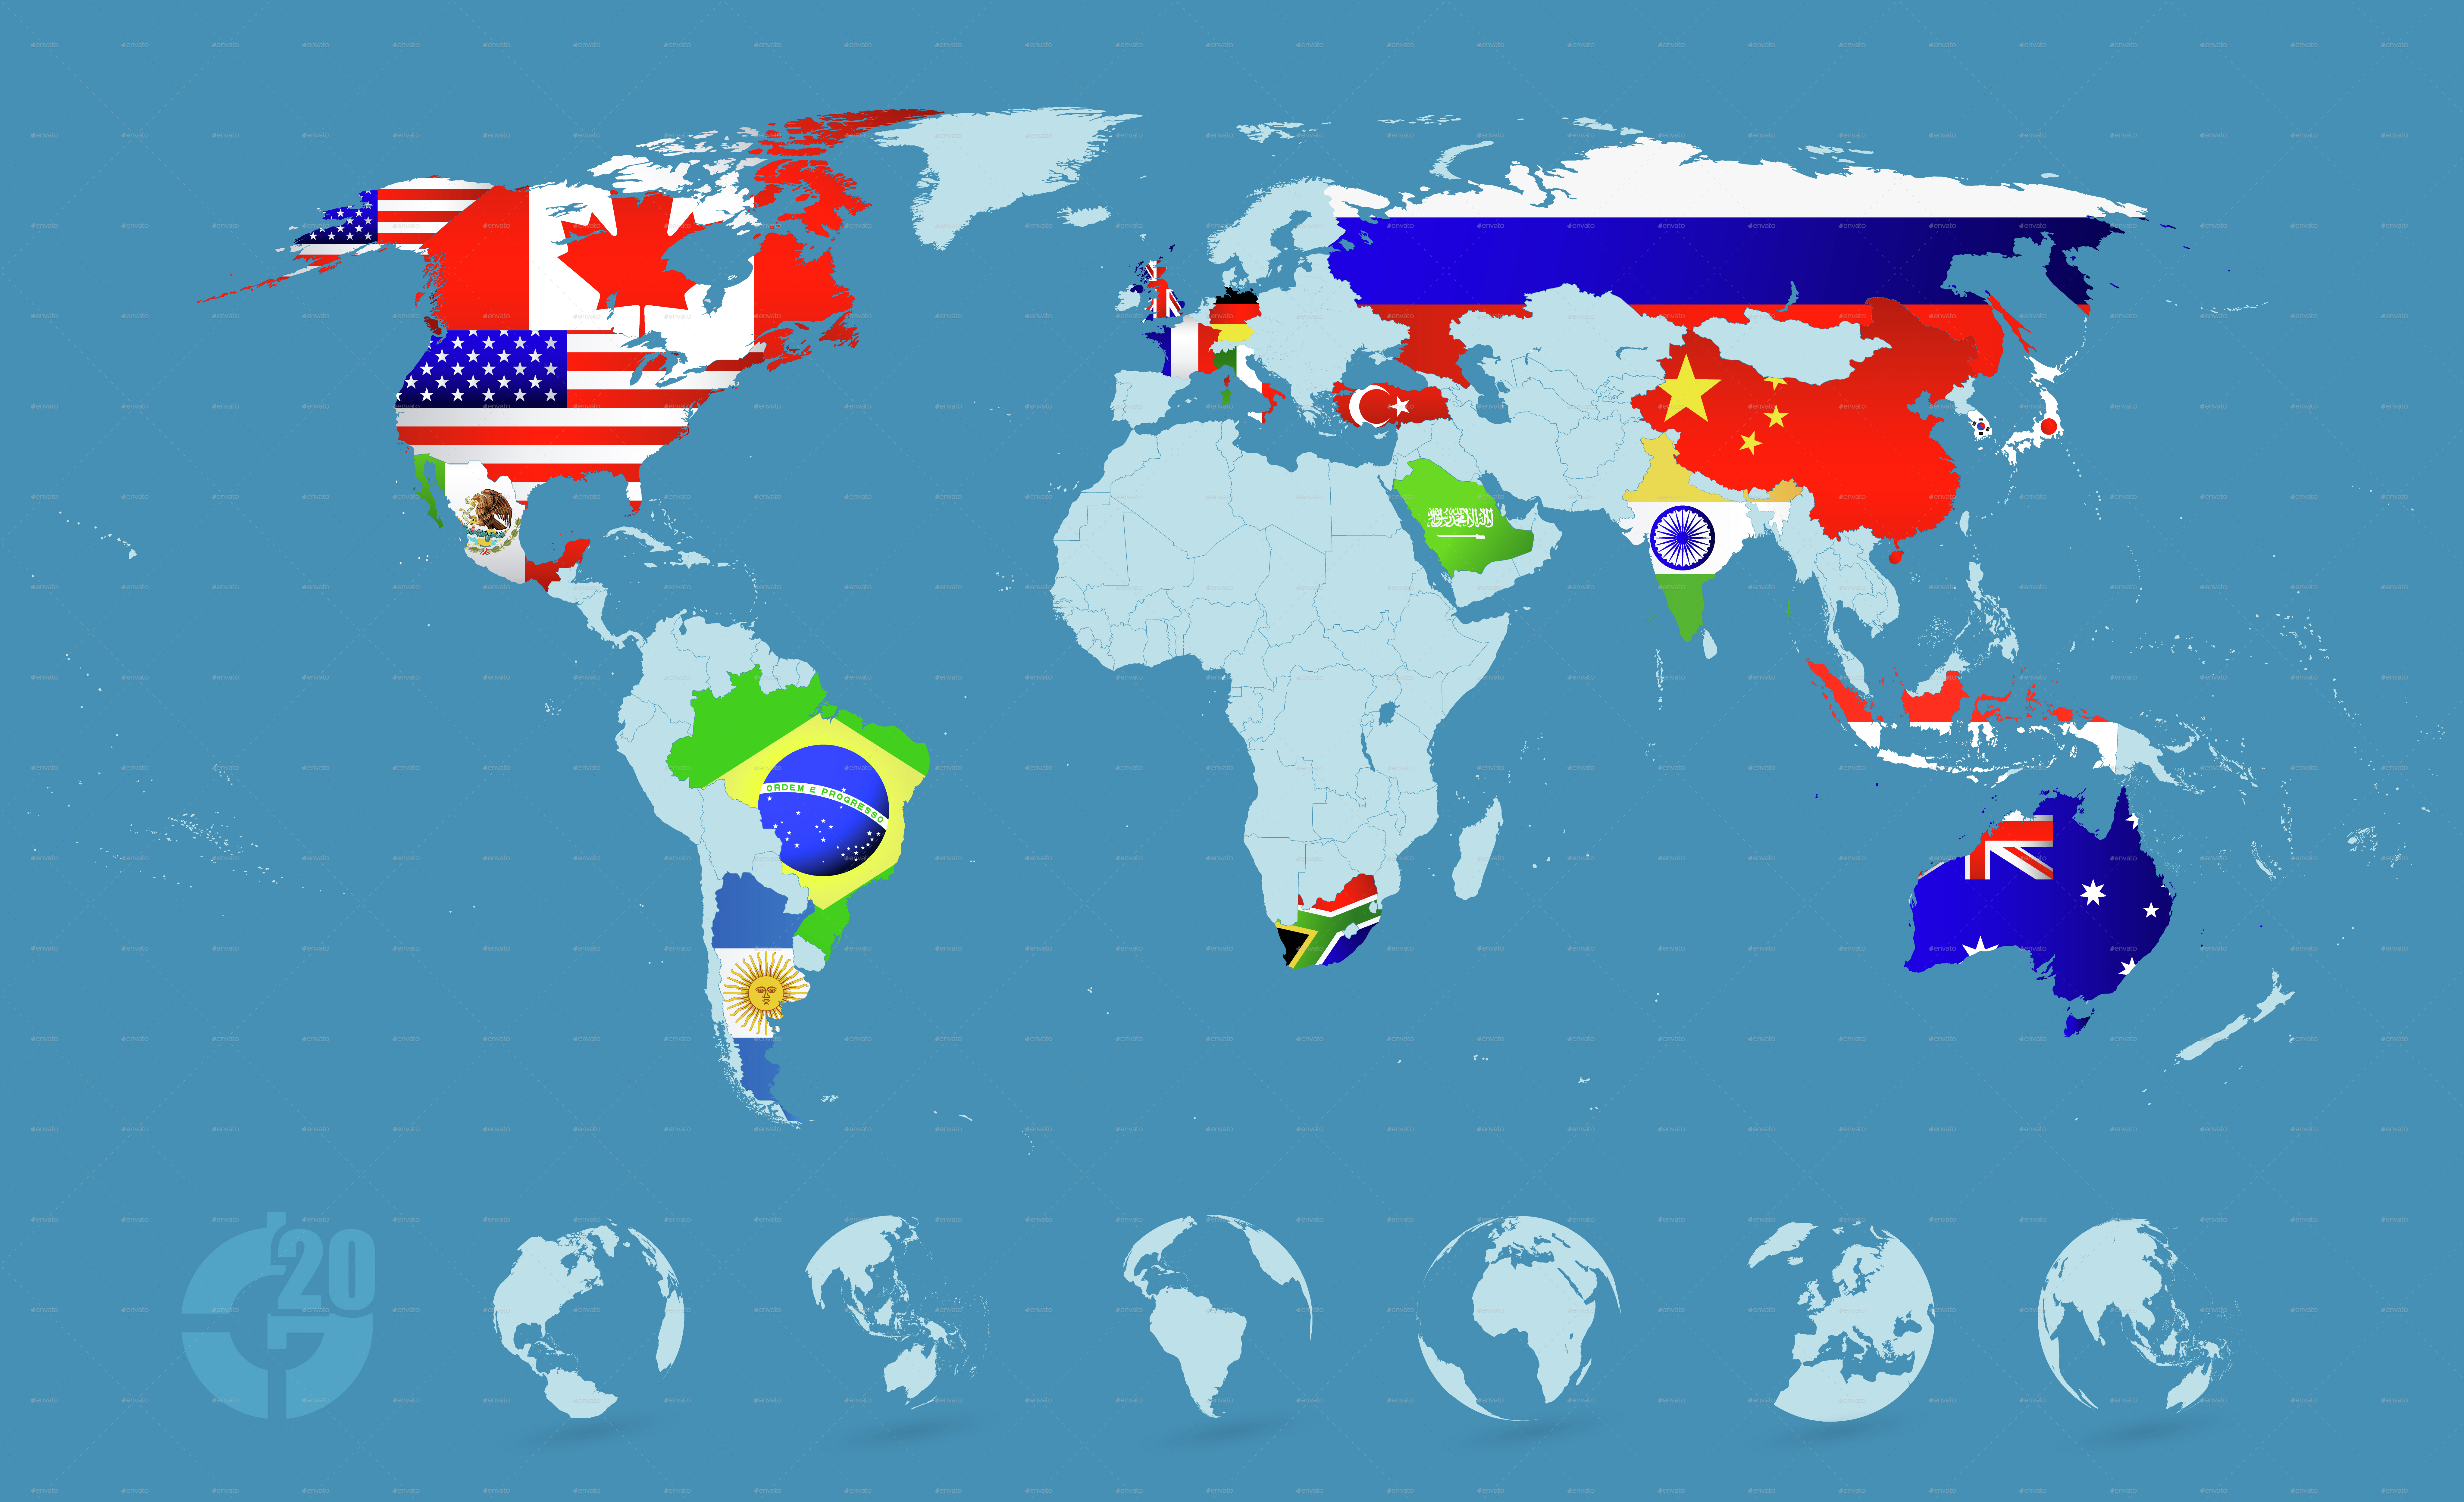 Country flags on detailed world map by pomogayev graphicriver country flags on detailed world map gumiabroncs Choice Image